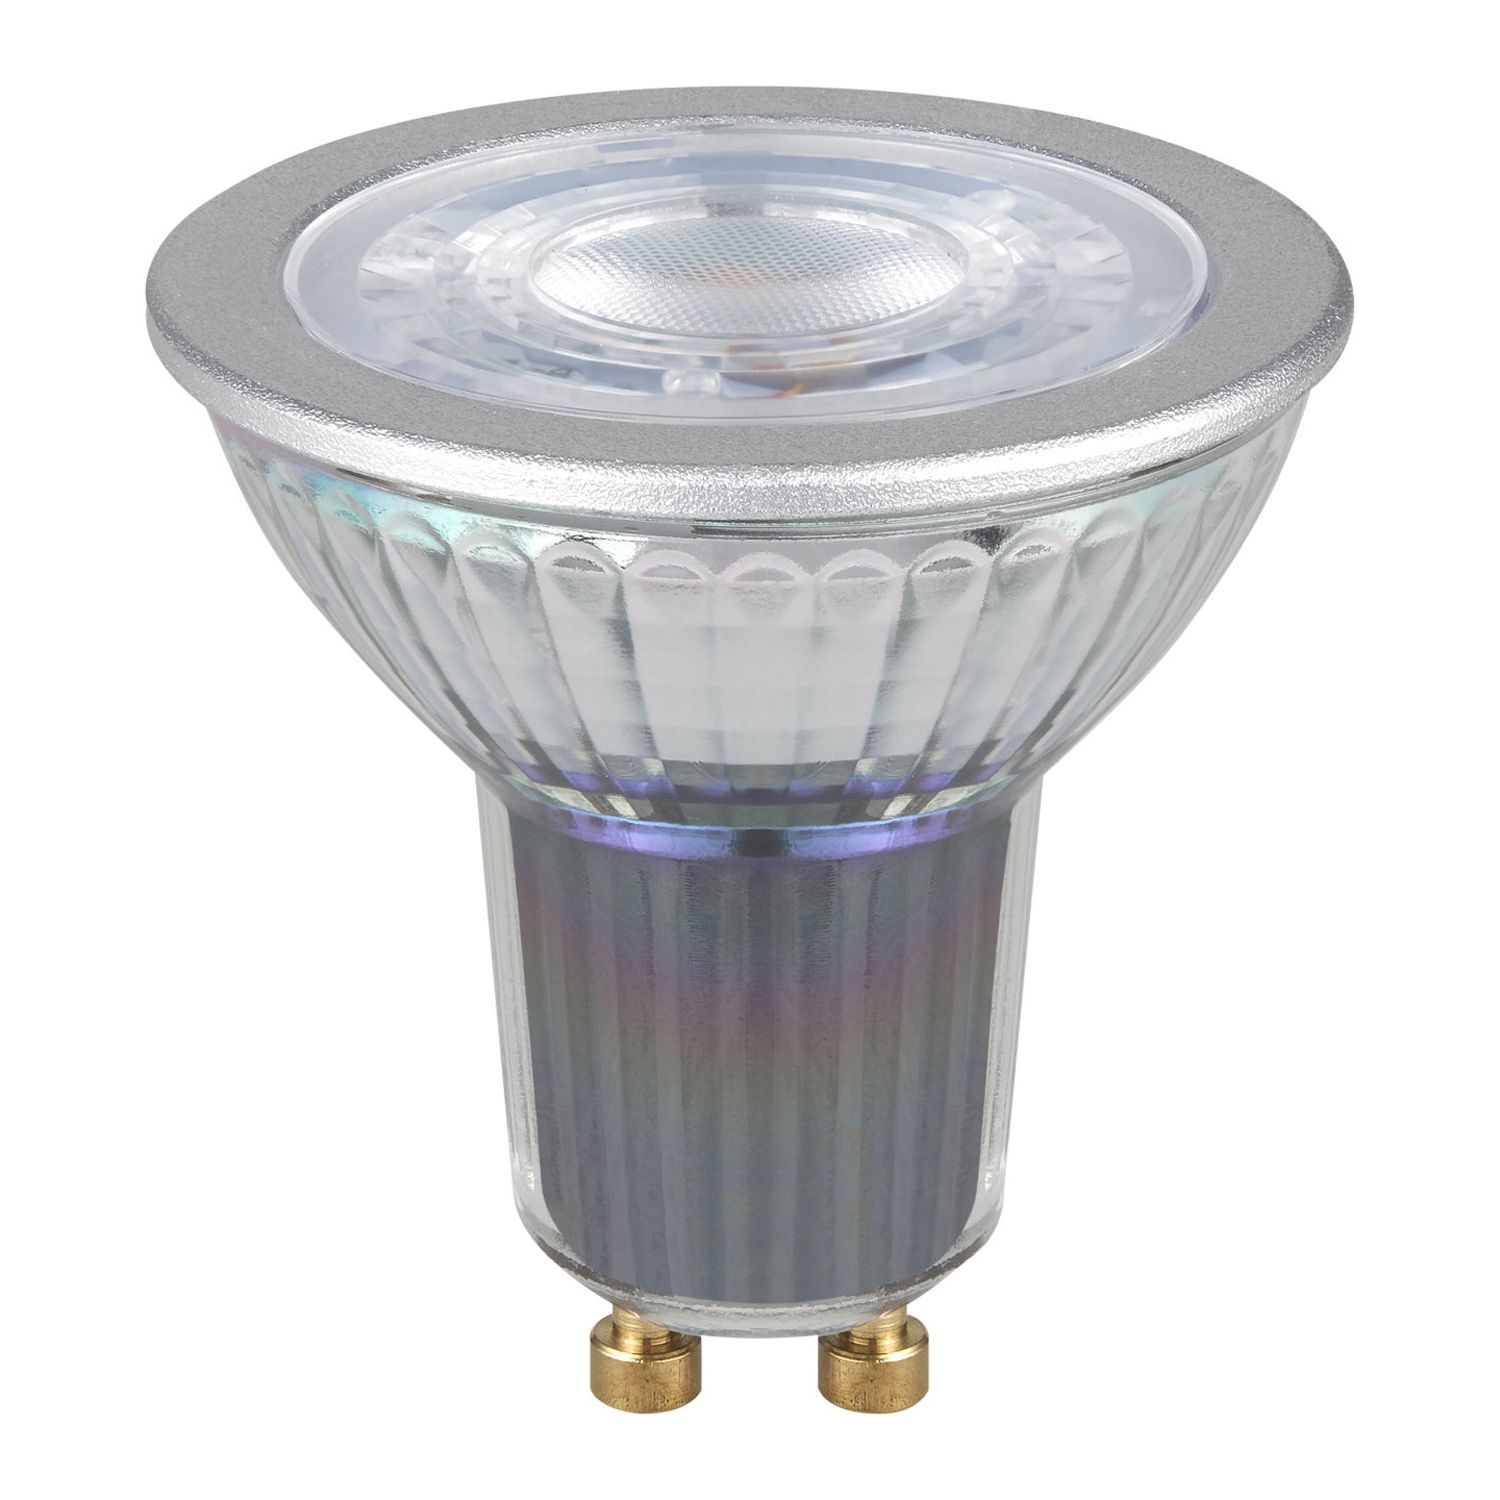 Osram Parathom GU10 PAR16 9,6W 840 750lm | Dimmable - Replacer for 100W